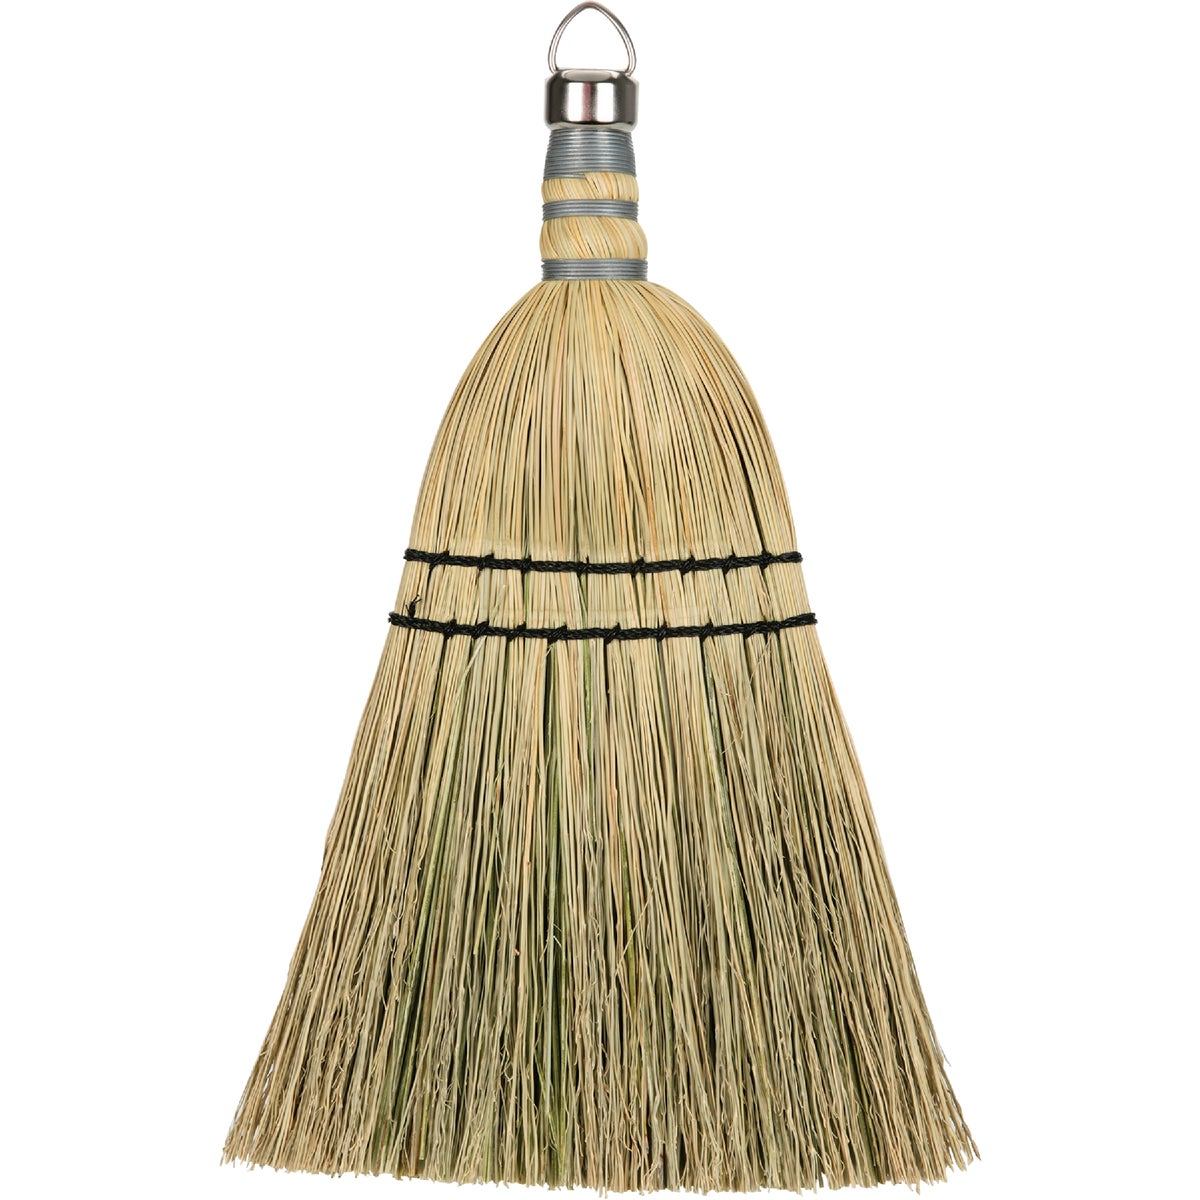 CORN WHISK BROOM - 530 by Harper Brush Incom